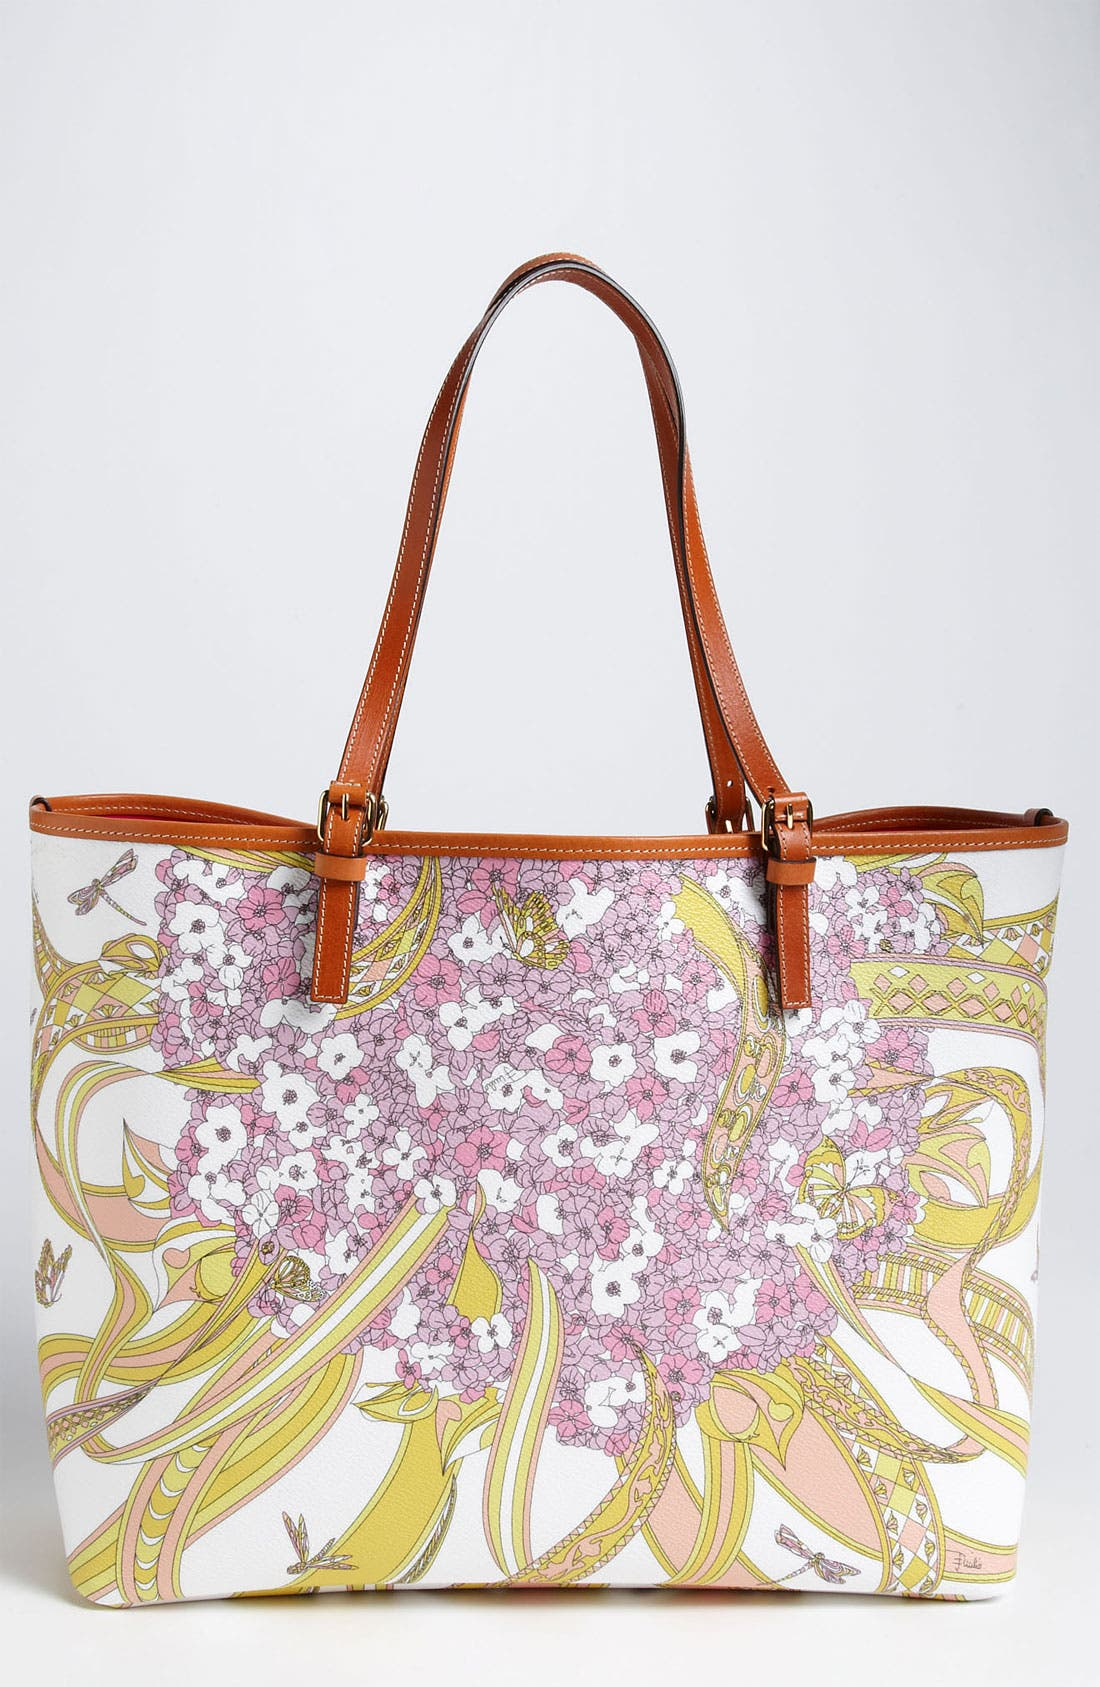 Alternate Image 1 Selected - Emilio Pucci 'Large' Shopper